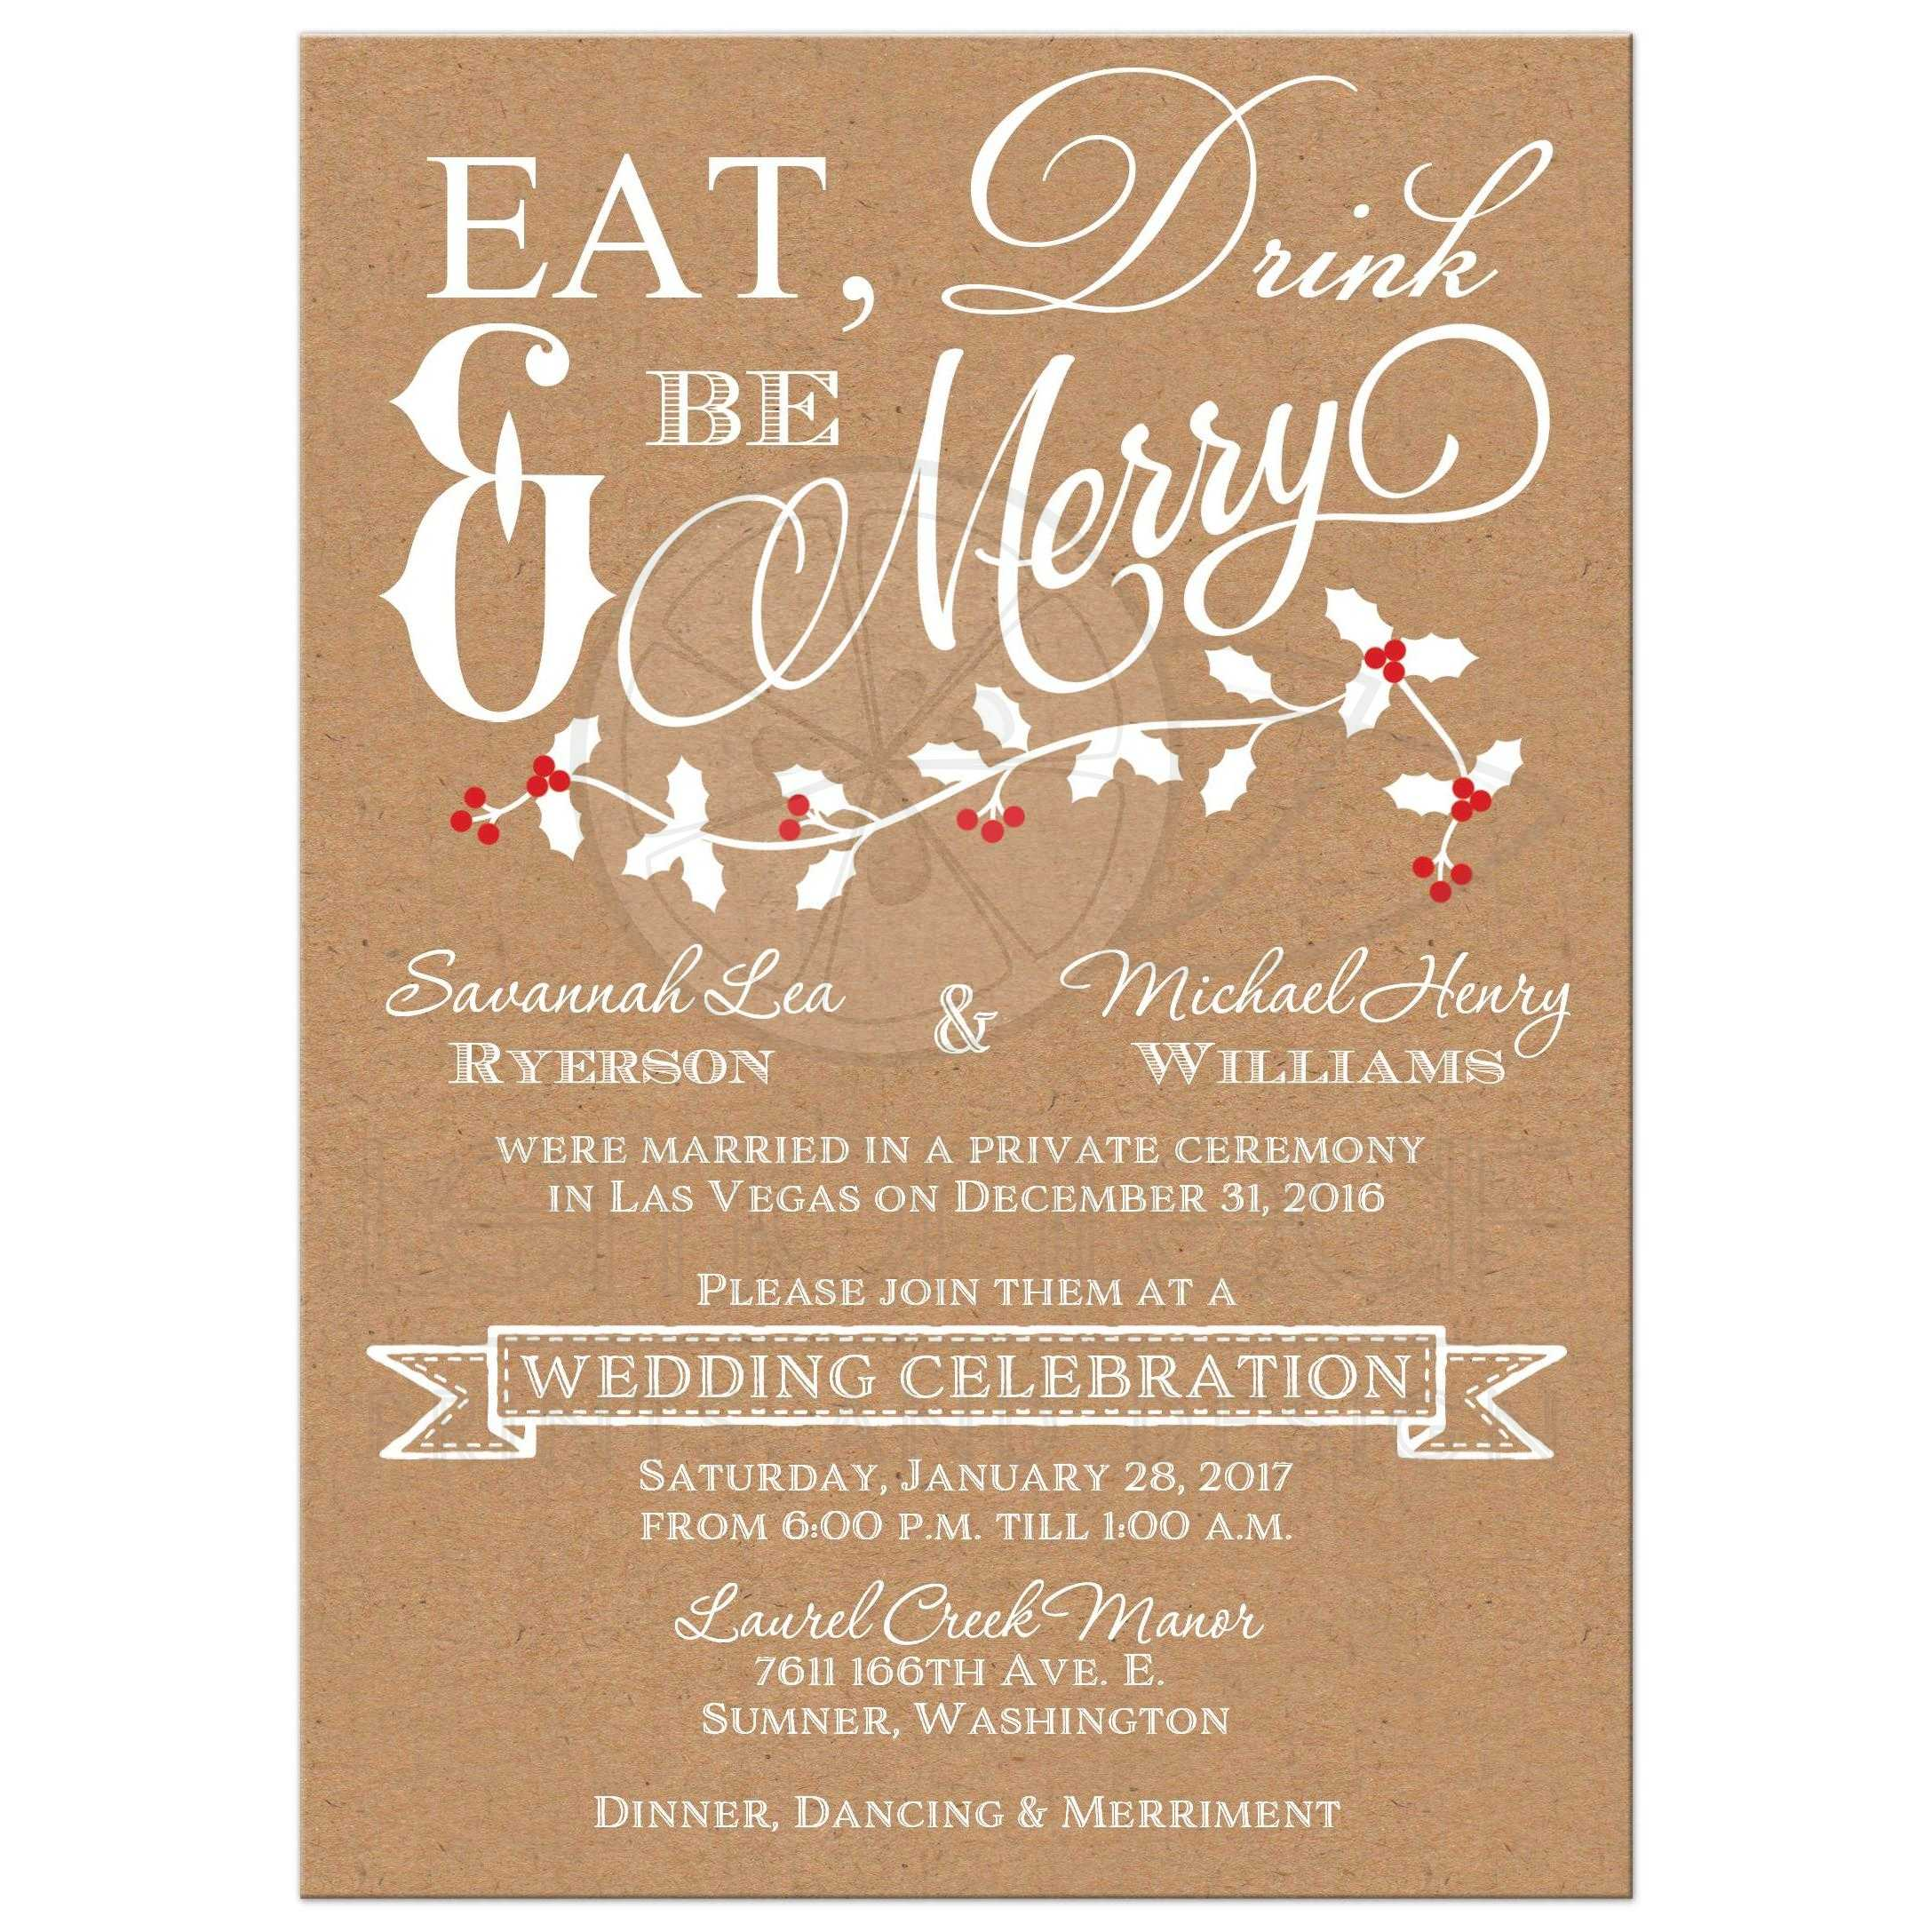 wedding reception invites - Akba.greenw.co